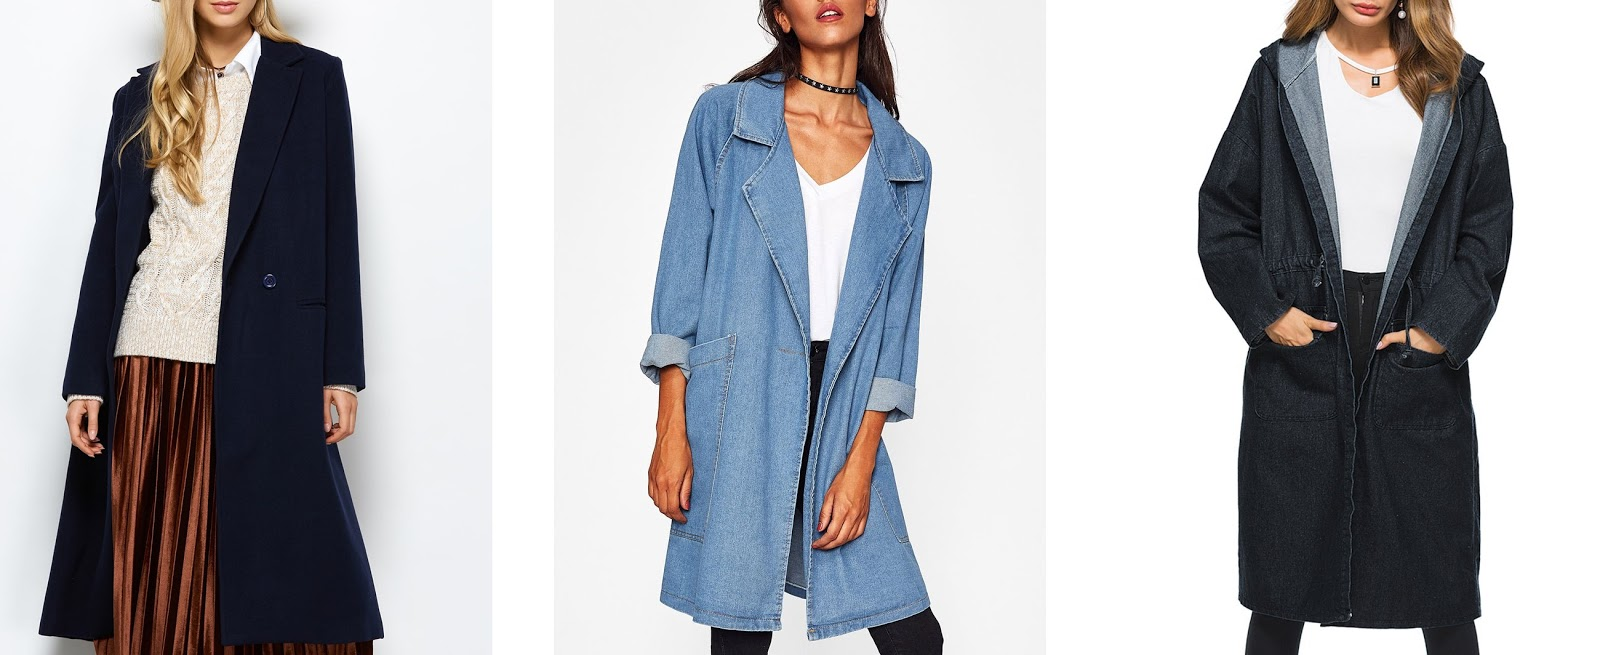 rosegal, online fashion, denim jacket, laple maxi coat, hooded denim jacket